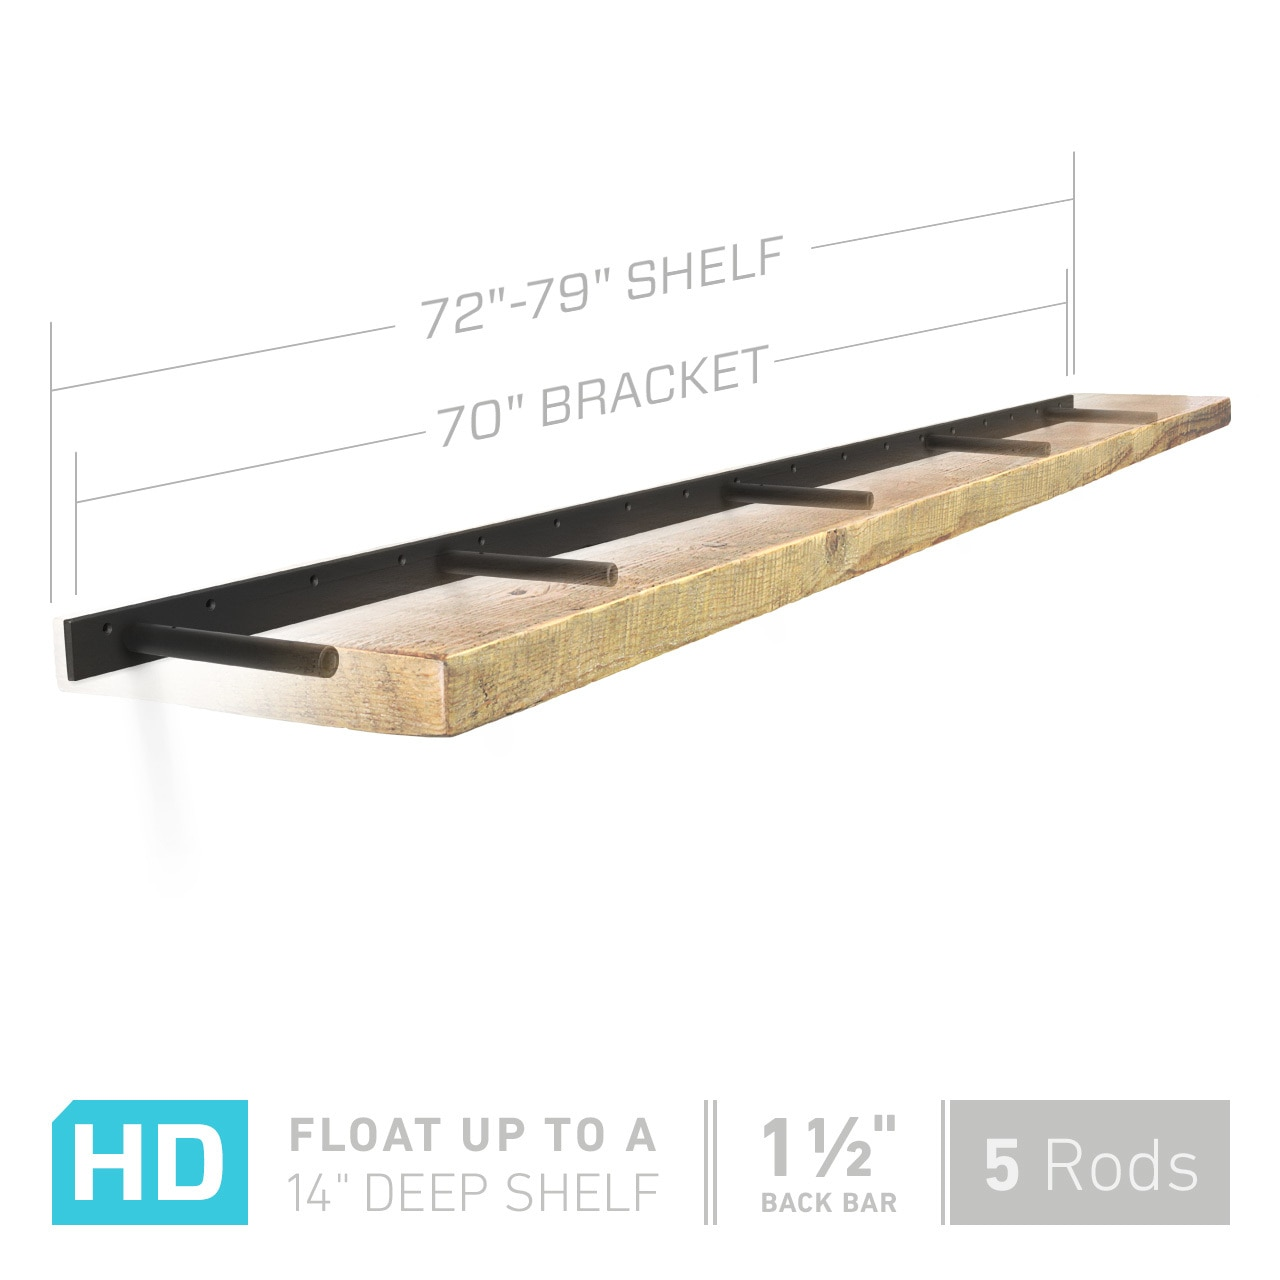 heavy duty floating shelf bracket fits inch shelves dimensions mounting options manufactured brackets that hold real weight use these hidden for your custom retail shelving door